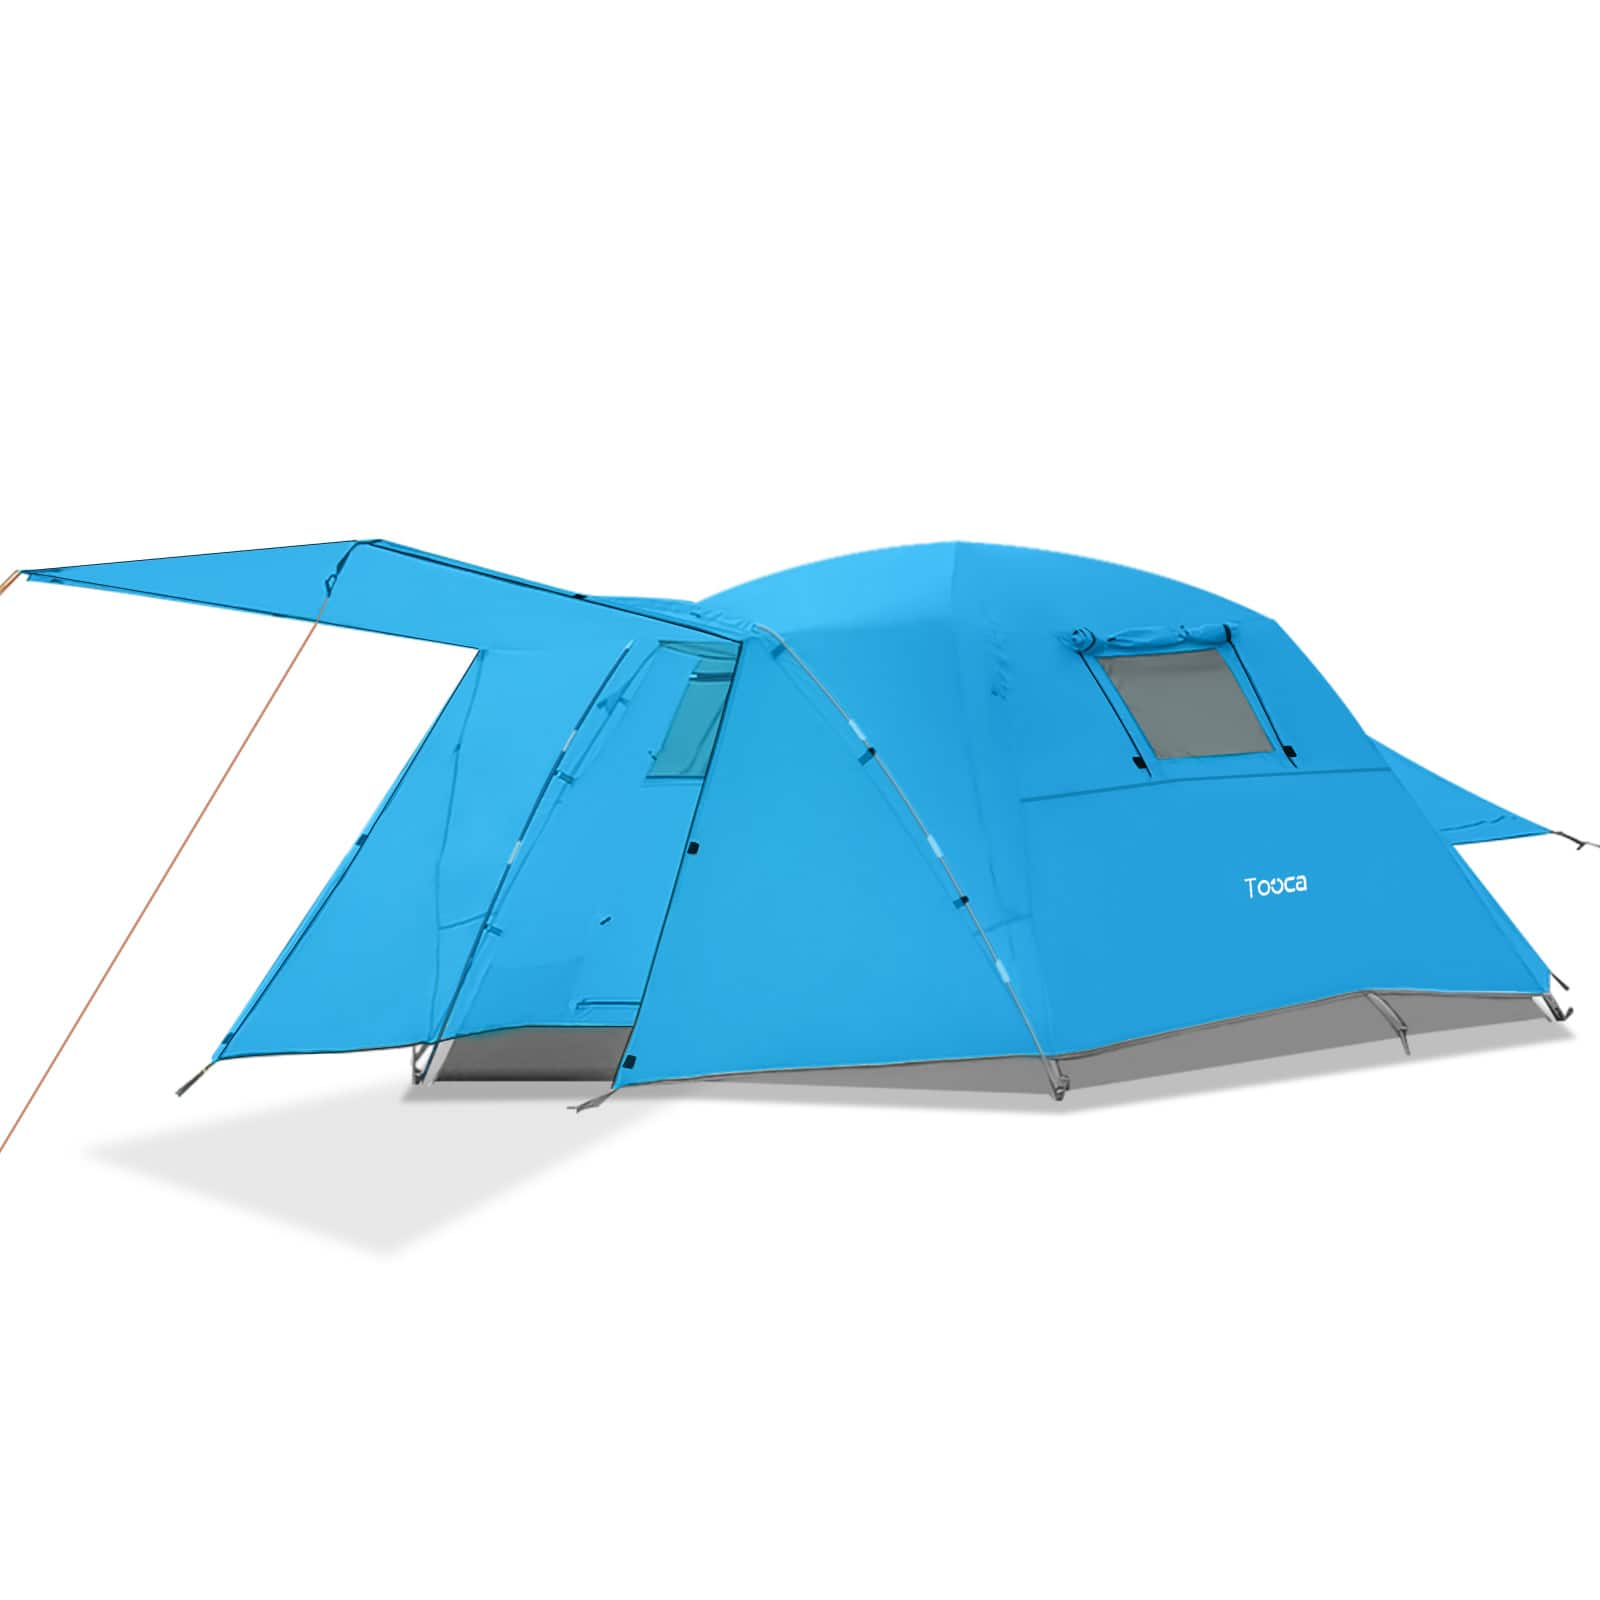 Tooca 4 Person dual shell tent with two porch rainfly $89 at Walmart